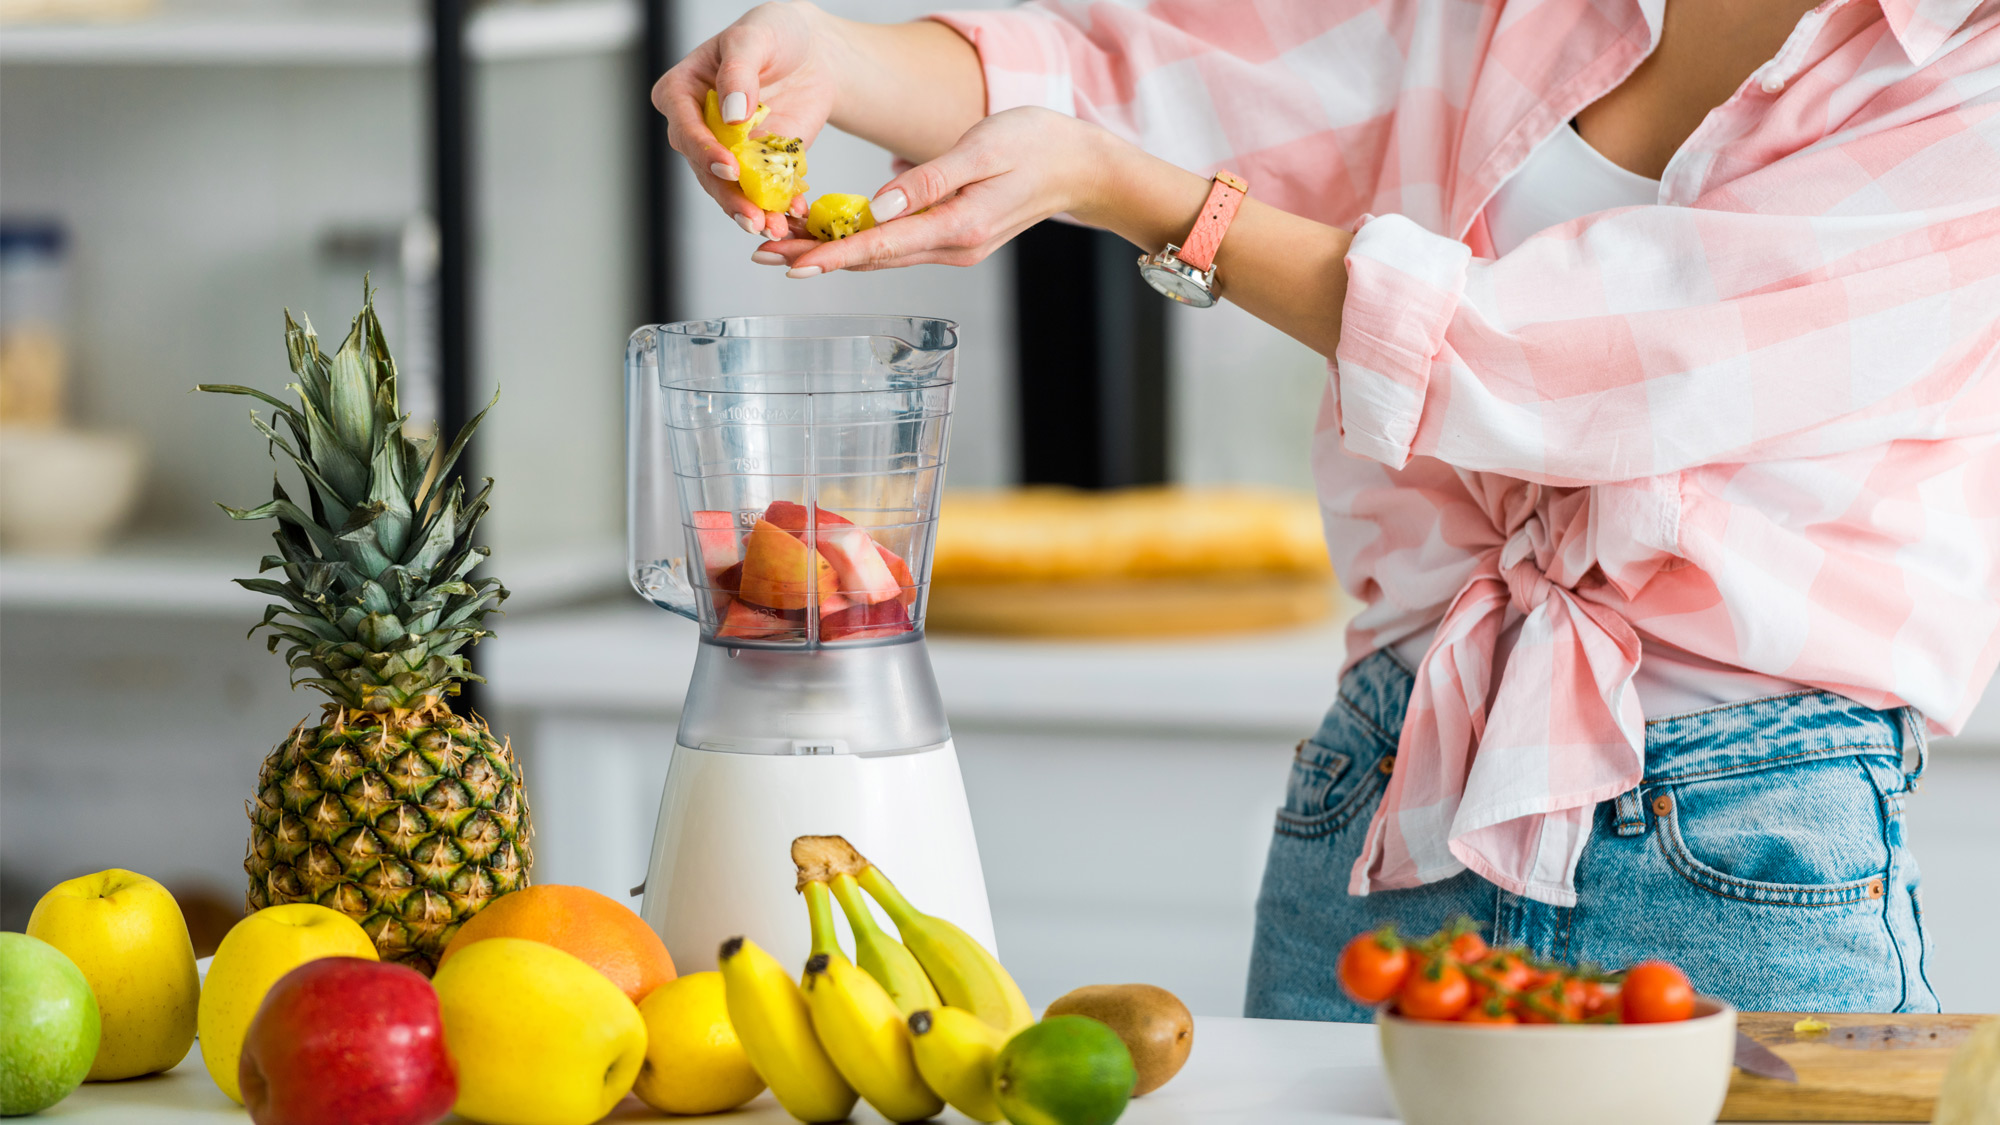 Juicers vs blenders: what's the difference?